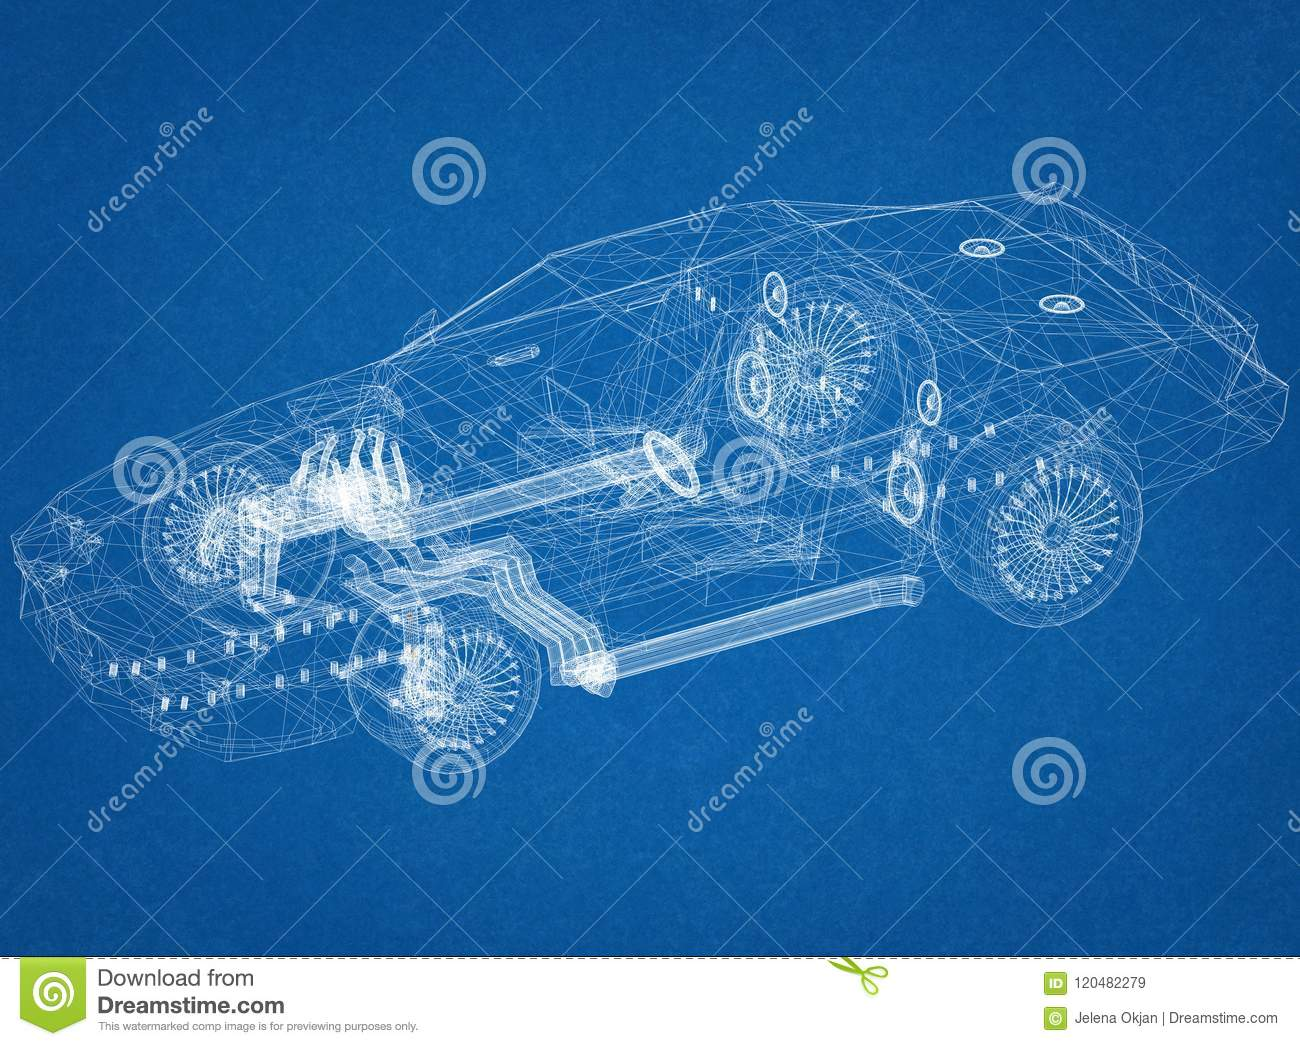 Jaguar Xj13 Blueprint Sport Car Architect Blueprint Stock Illustration Illustration Of